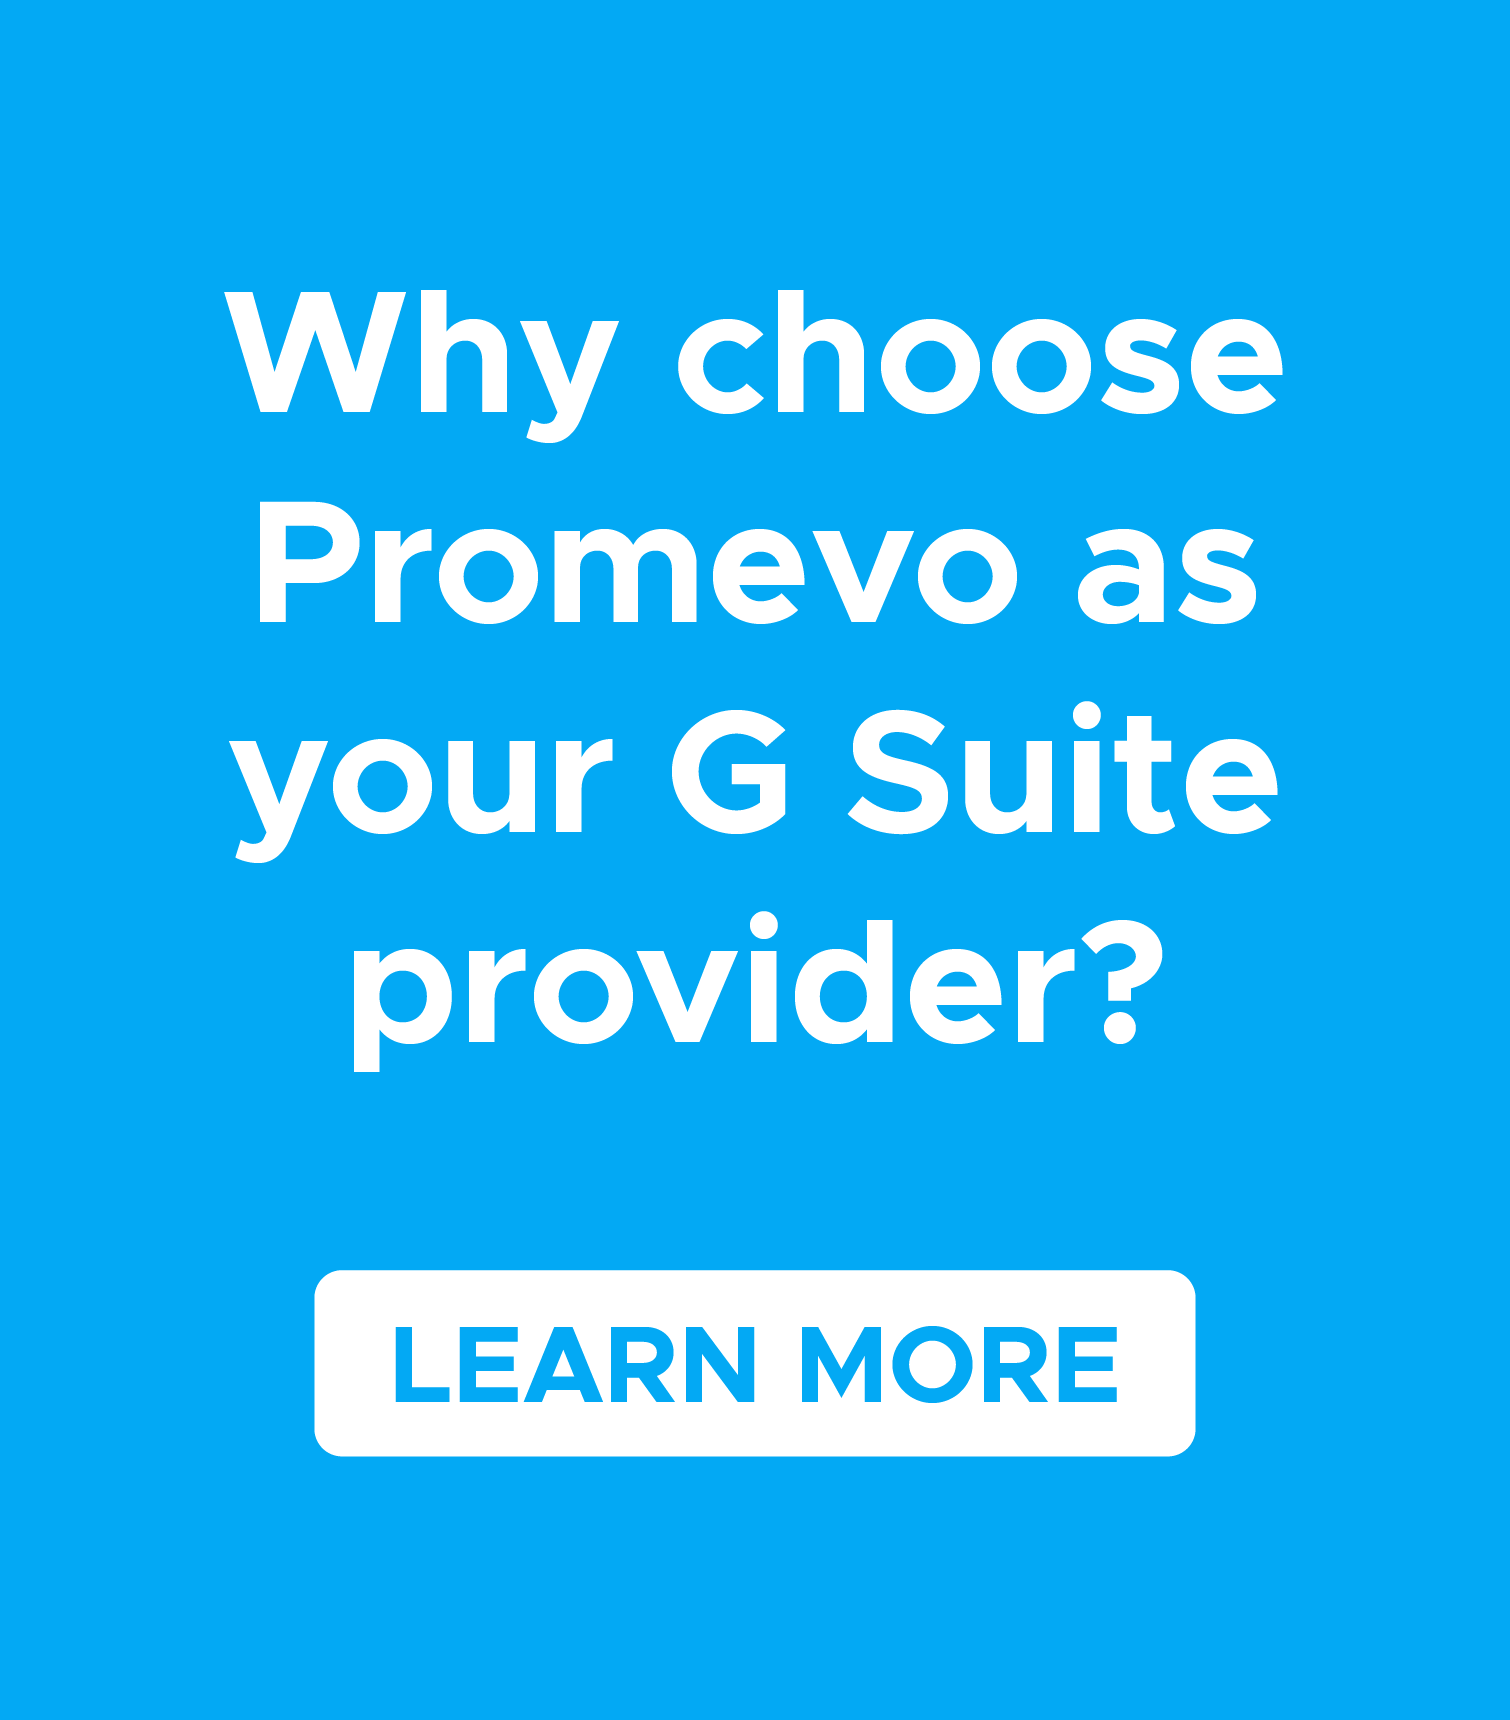 Learn why to choose Promevo as your G Suite provider.